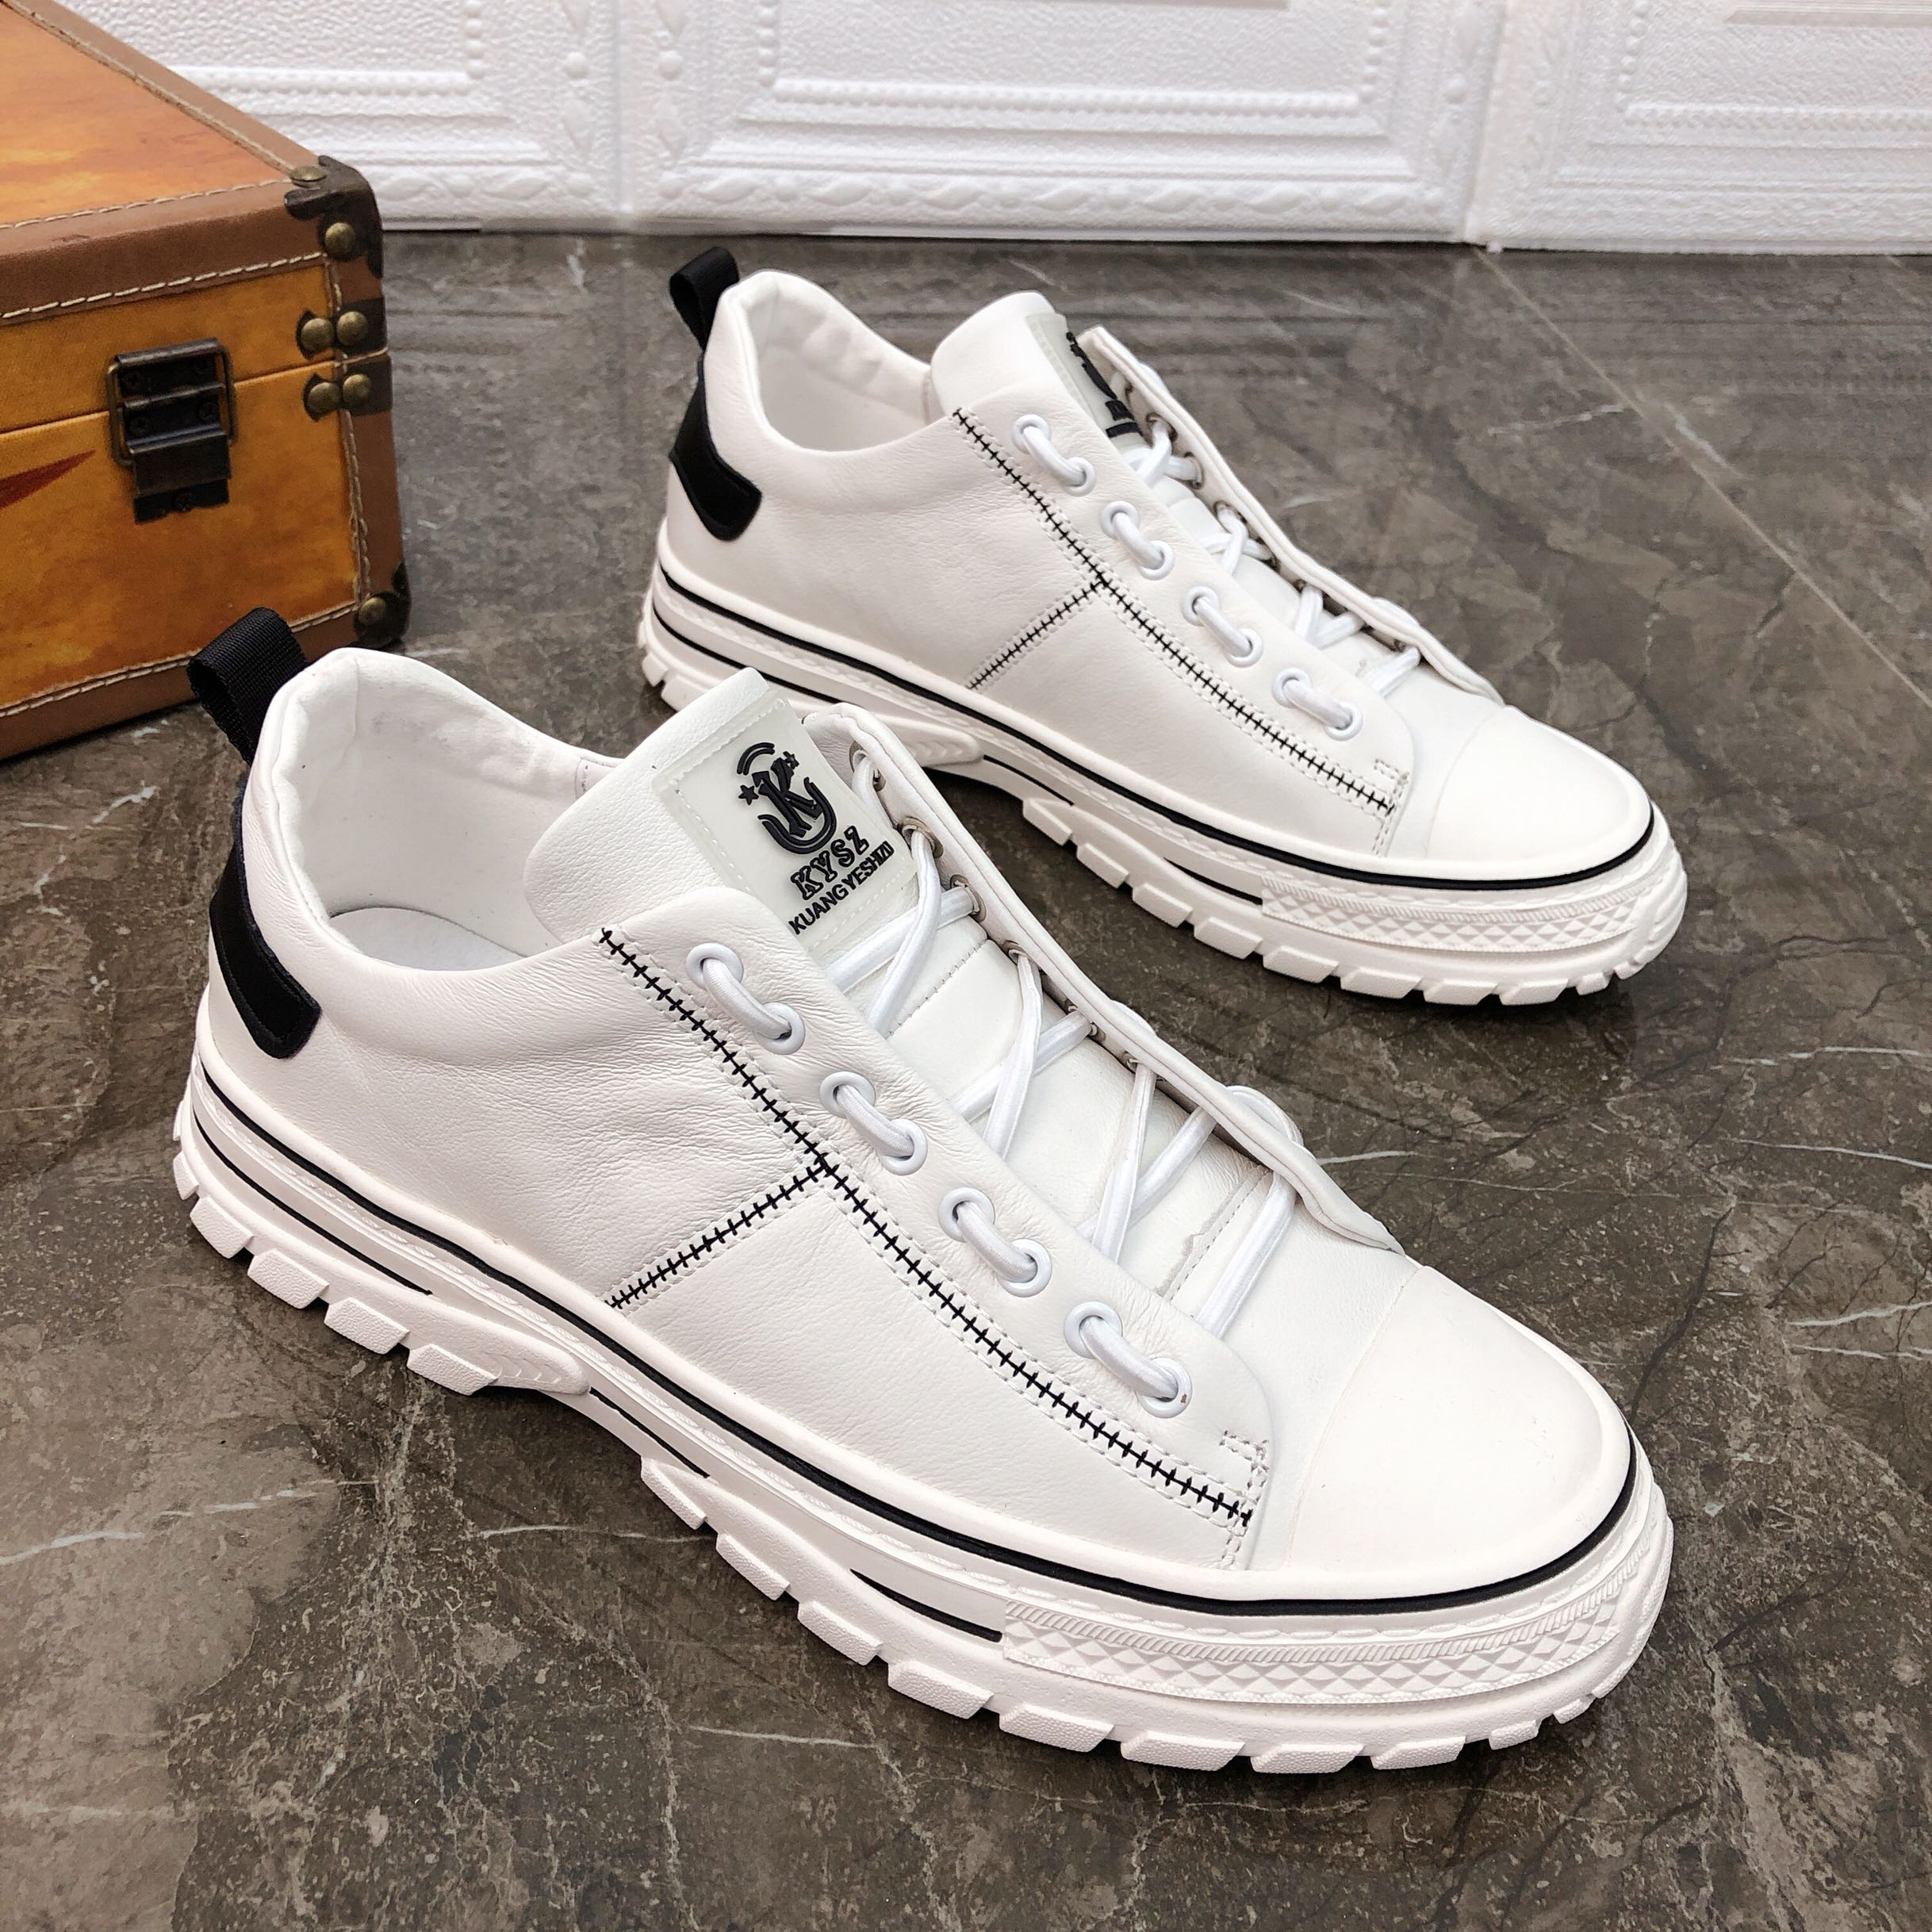 19 autumn new low top shoes full leather small white trend versatile sports leisure soft increase thick sole mens single